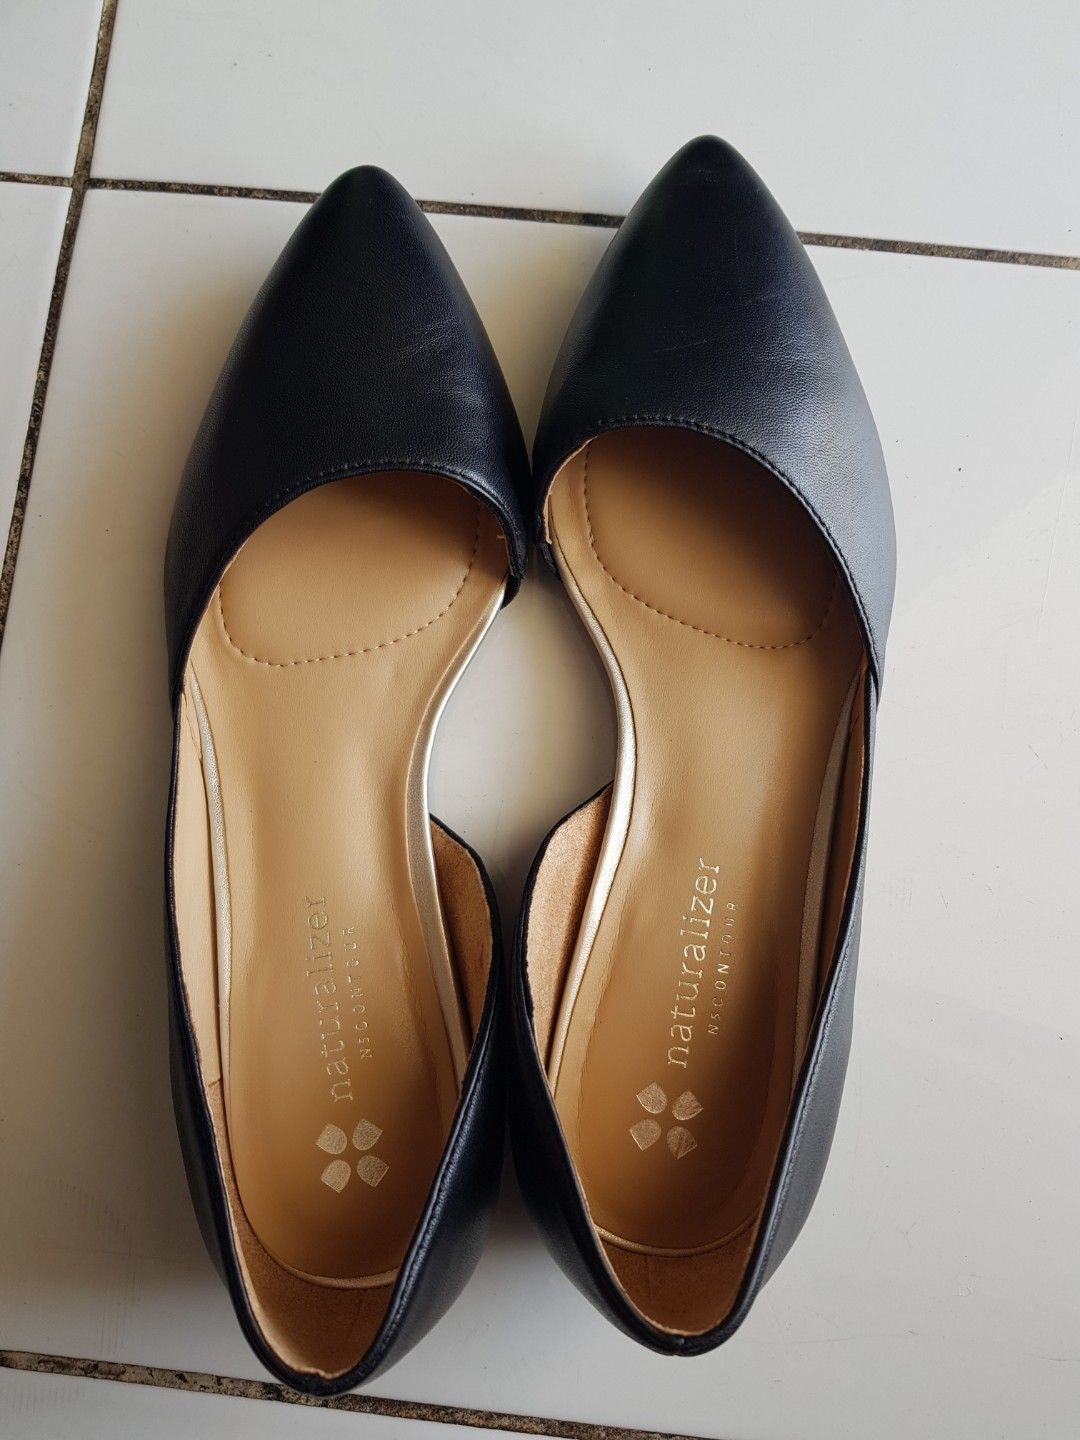 Authentic Naturalizer Office Flats